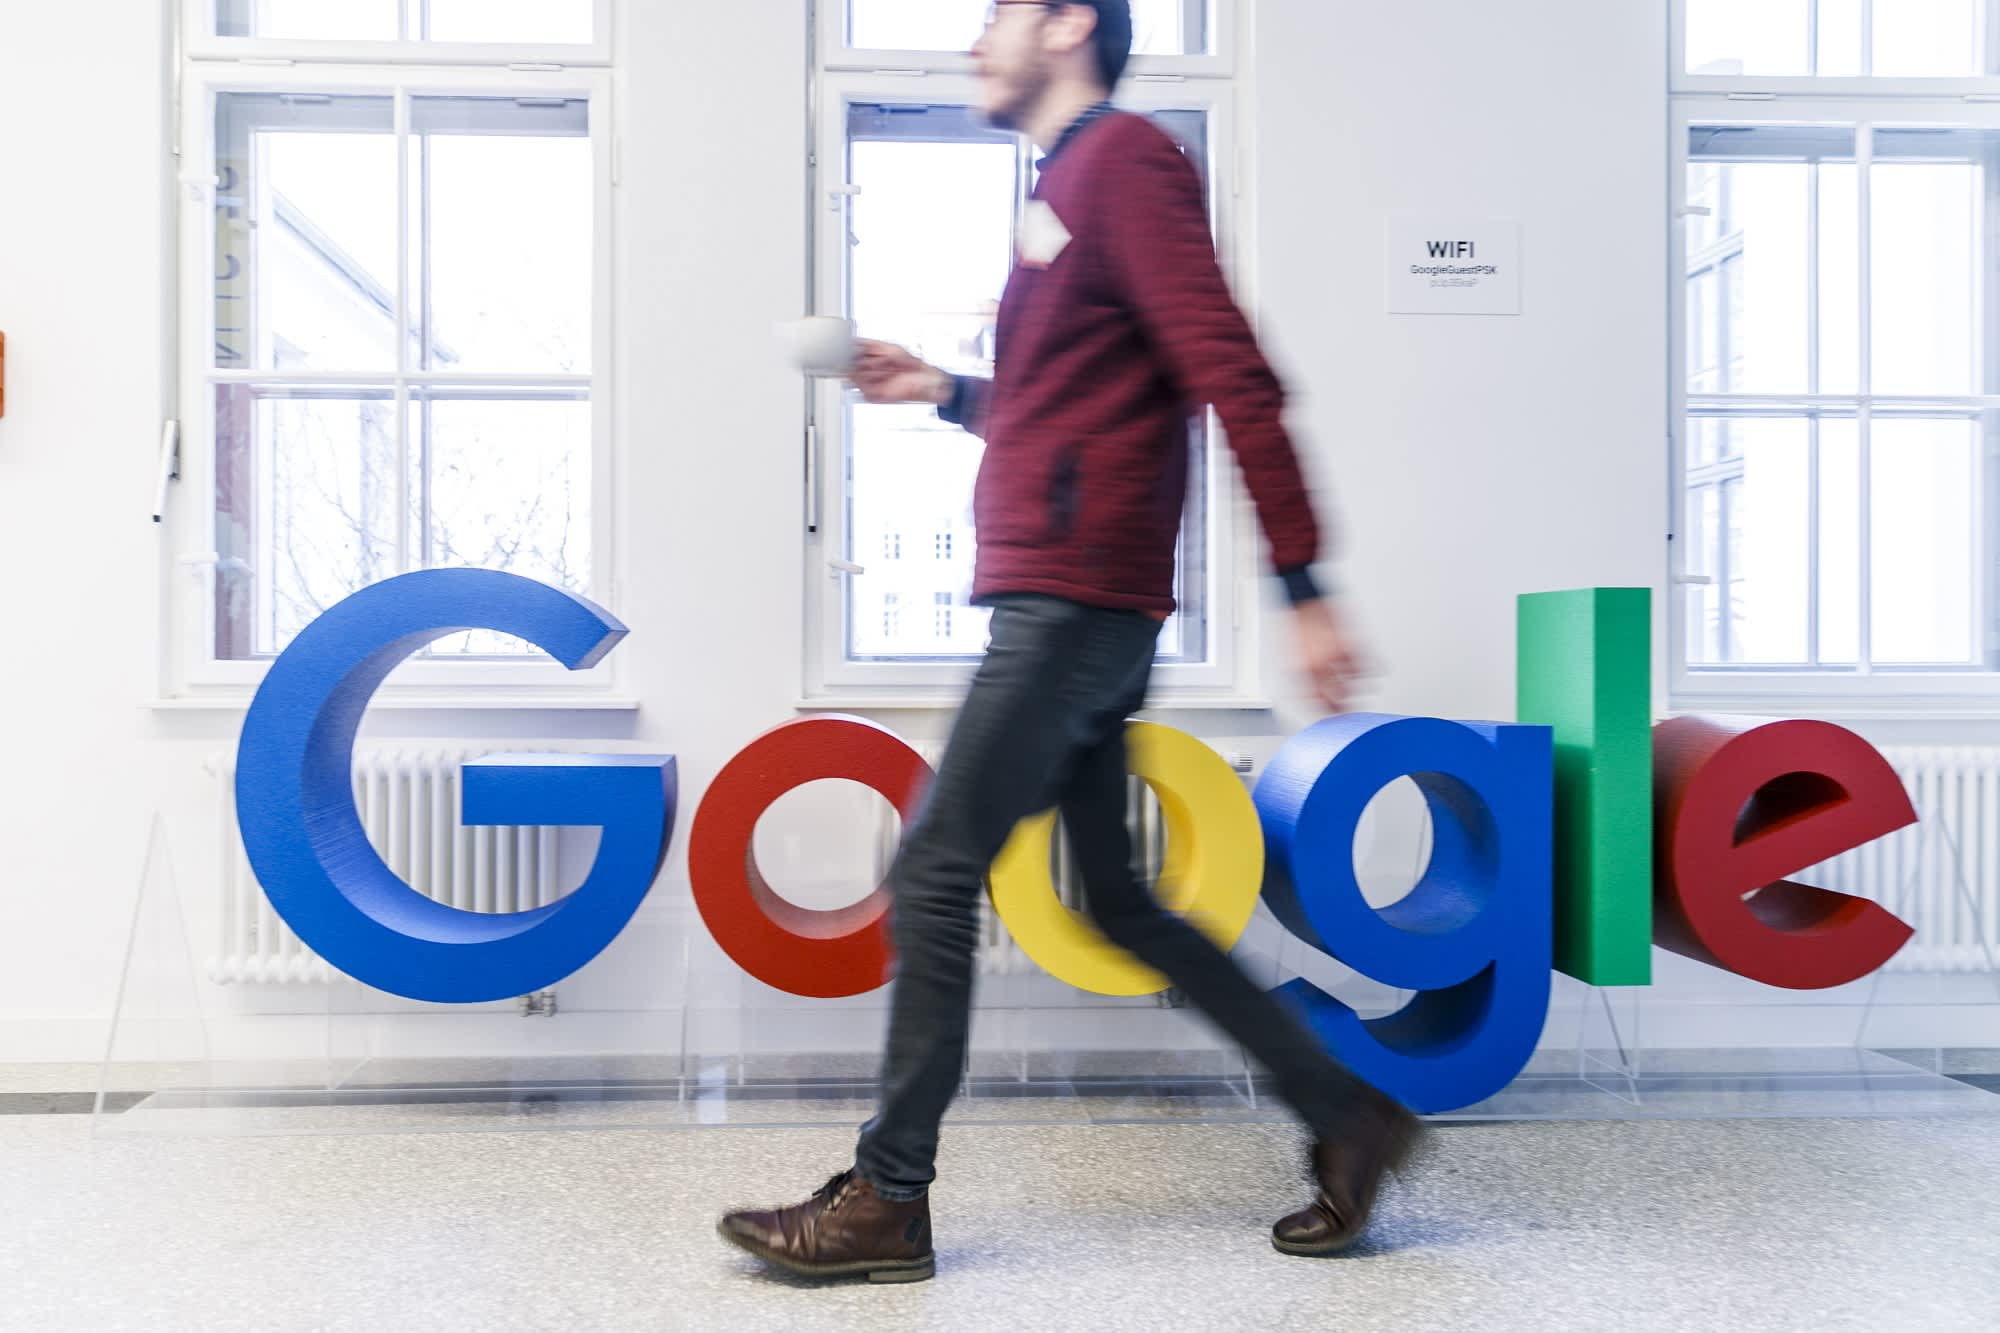 Google has to make the call on its future in Australia, competition watchdog says - CNBC